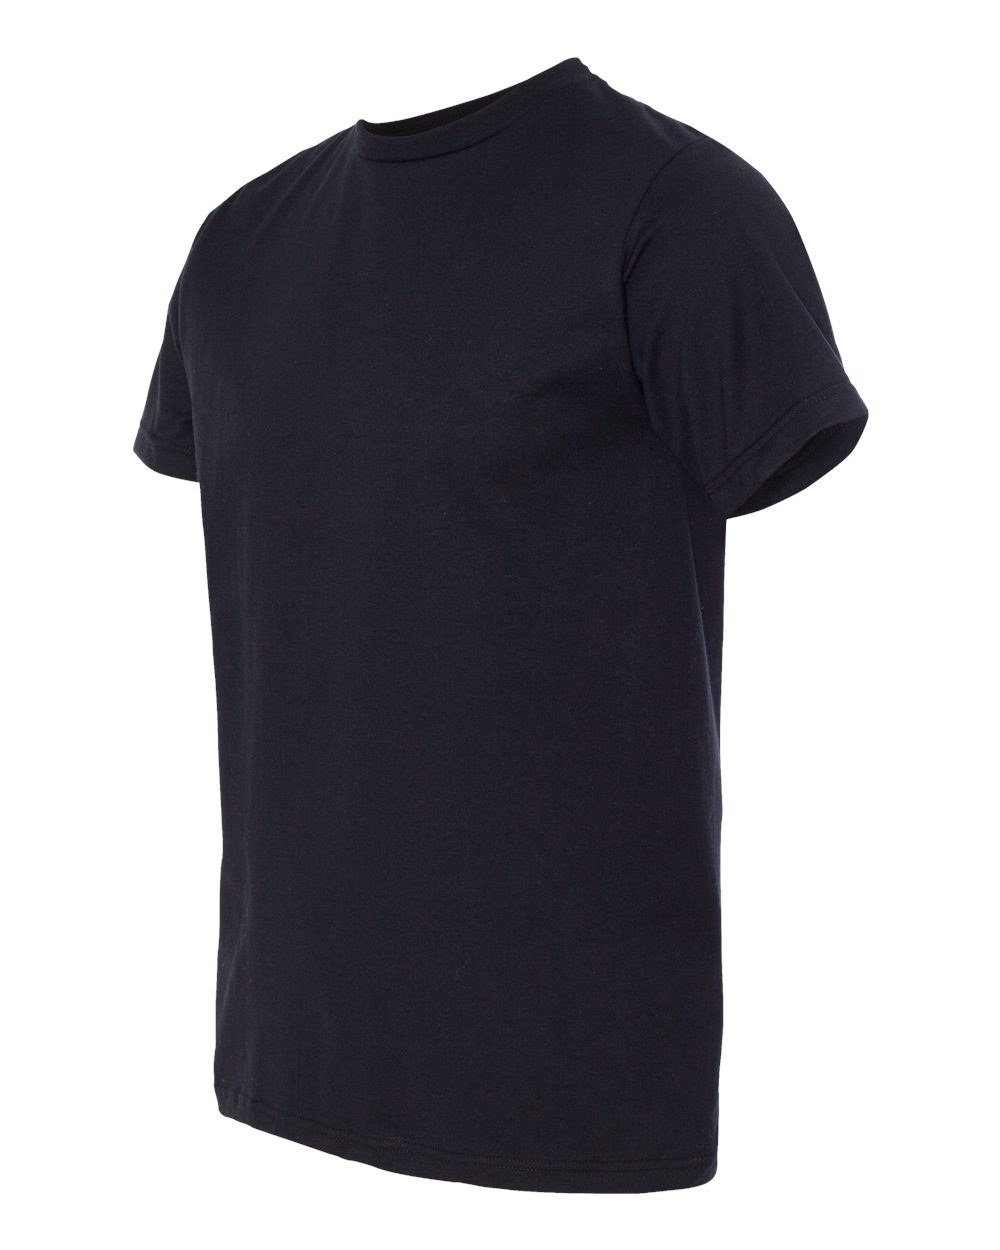 Anvil us980 american made short sleeve ringspun t shirt for Where are anvil shirts made